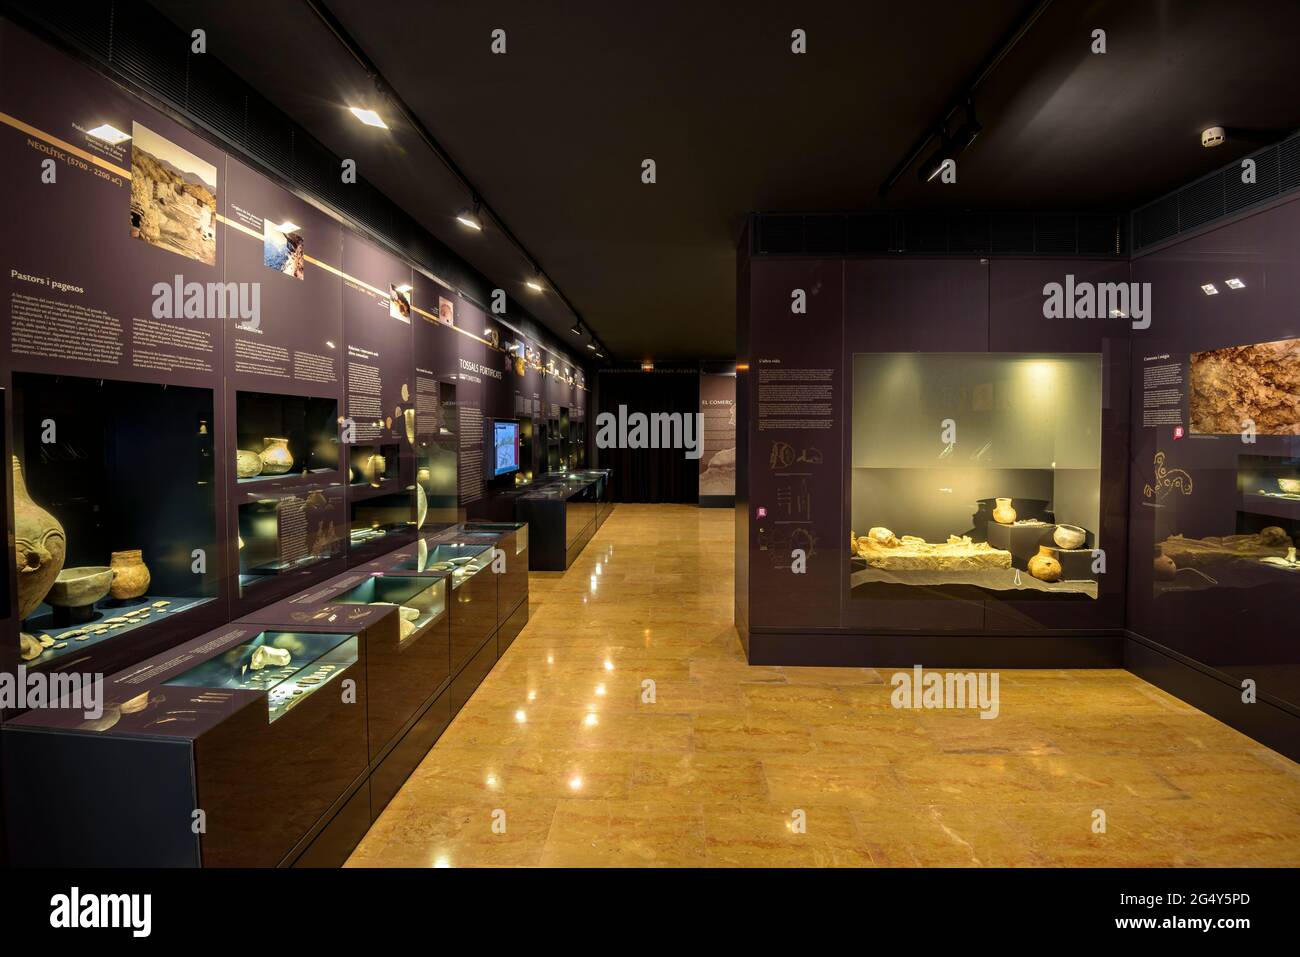 Objecte High Resolution Stock Photography and Images   Alamy